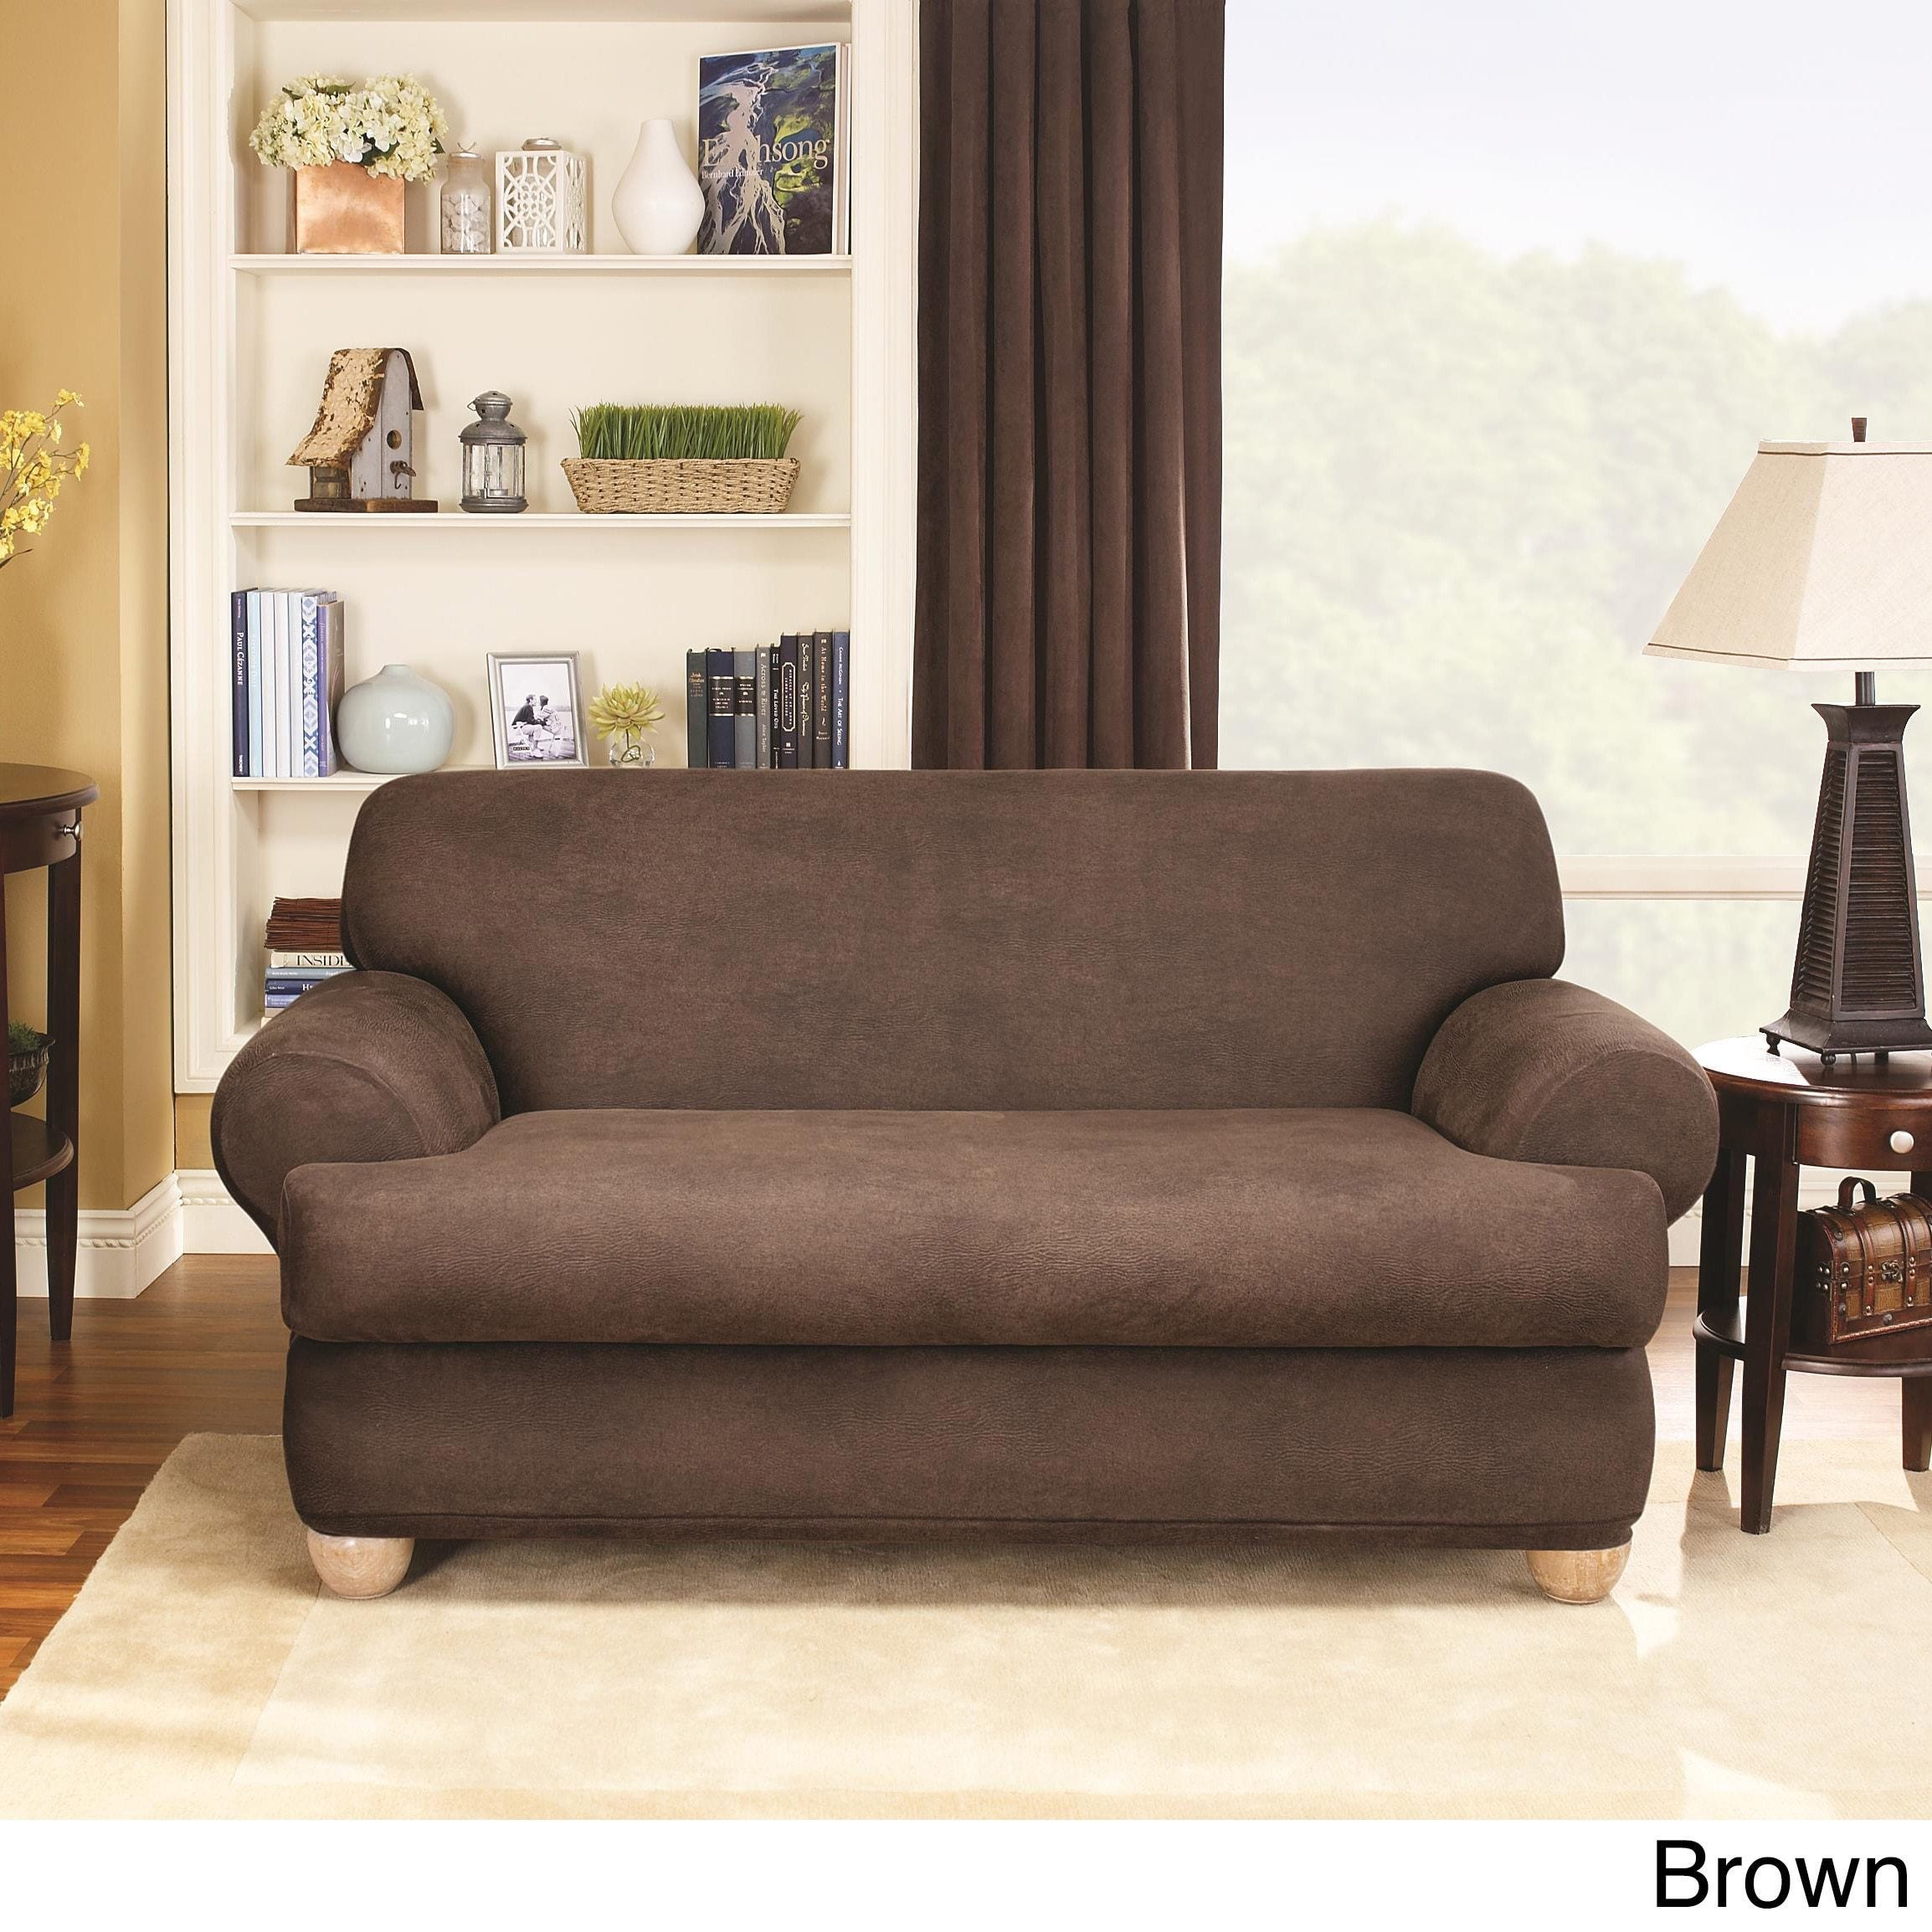 Charmant Sure Fit Stretch Faux Leather 2 Piece T Cushion Sofa Slipcover